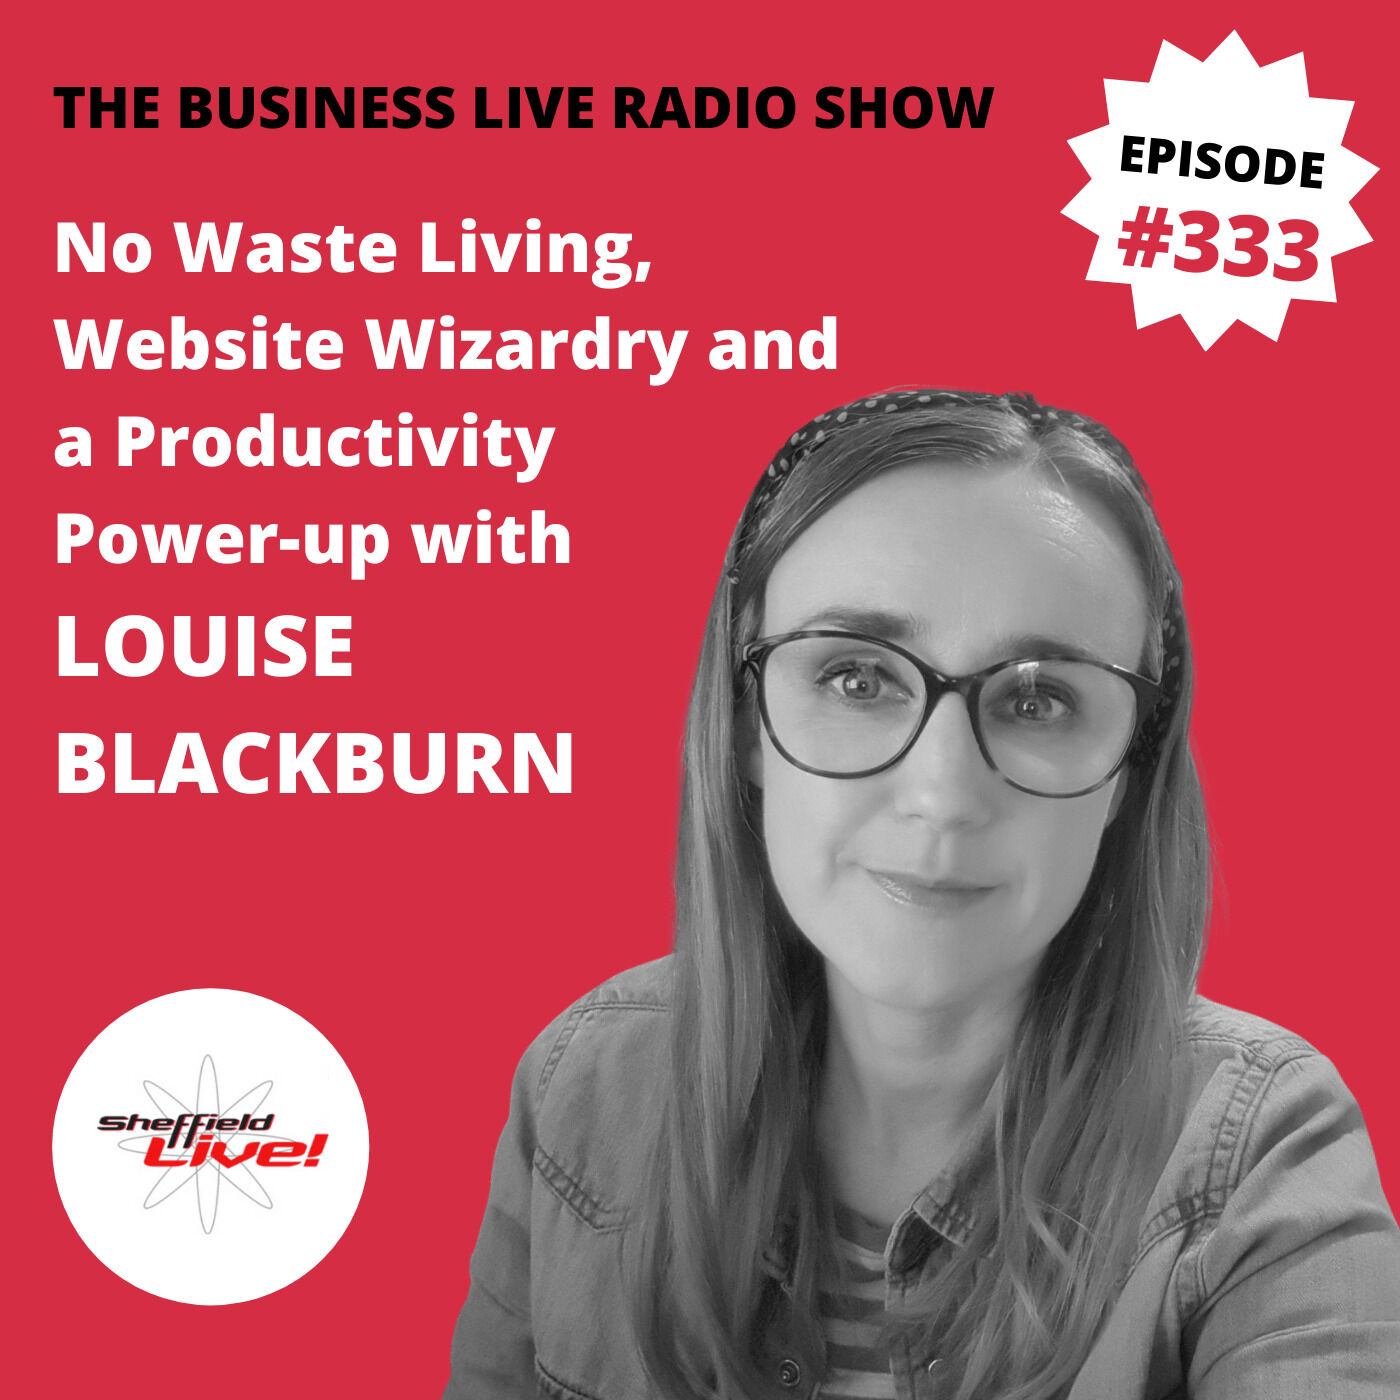 No Waste Living, Website Wizardry and a Productivity Power-Up with Louise Blackburn